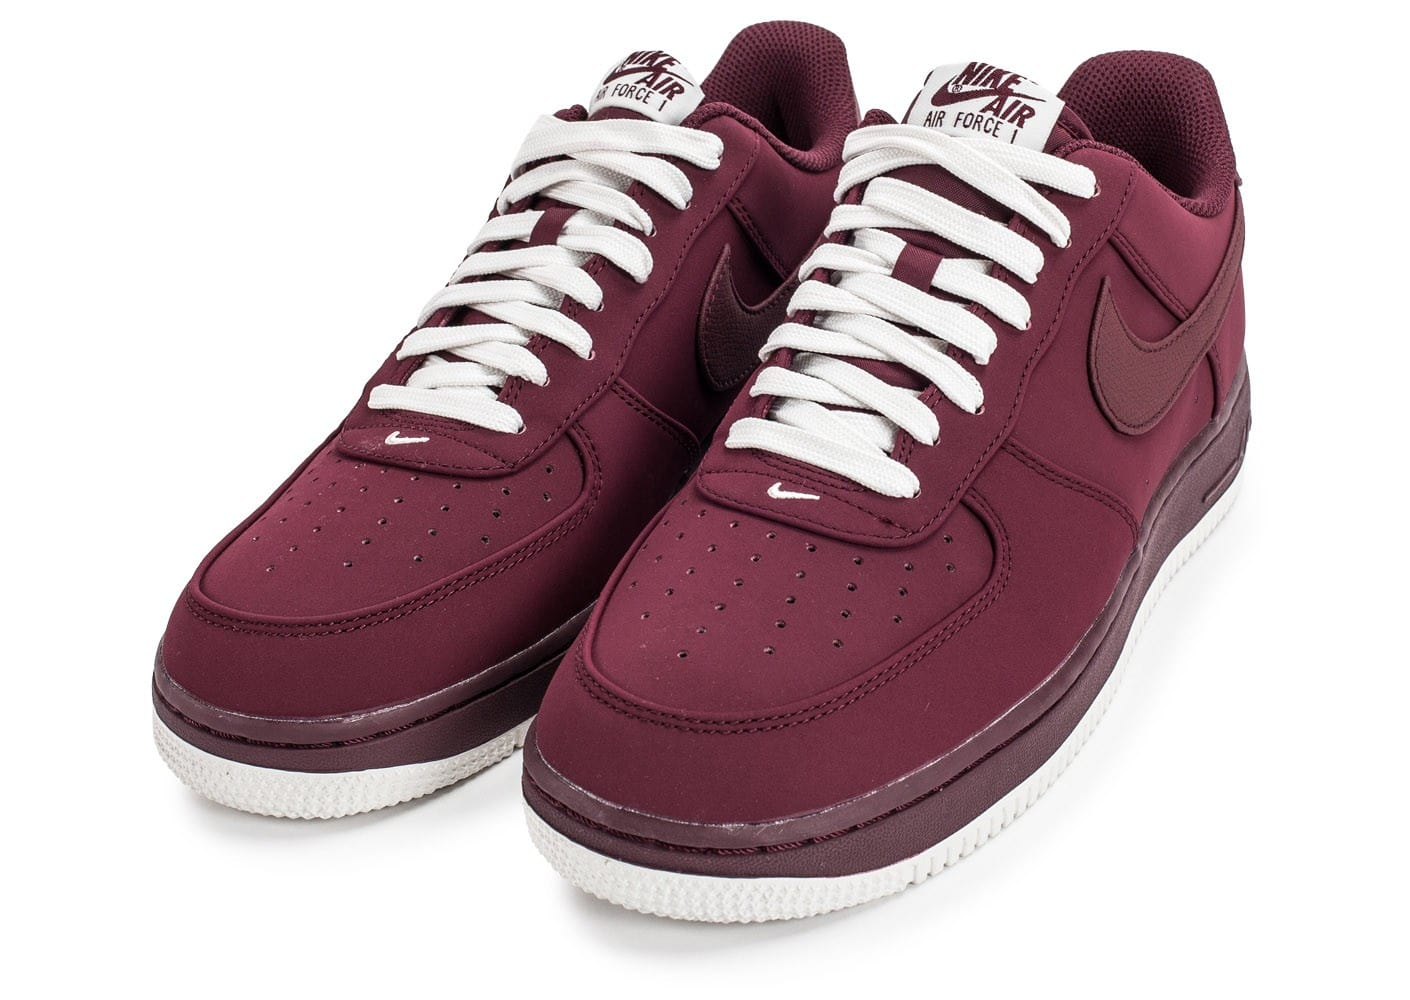 nike air force 1 femme bordeaux